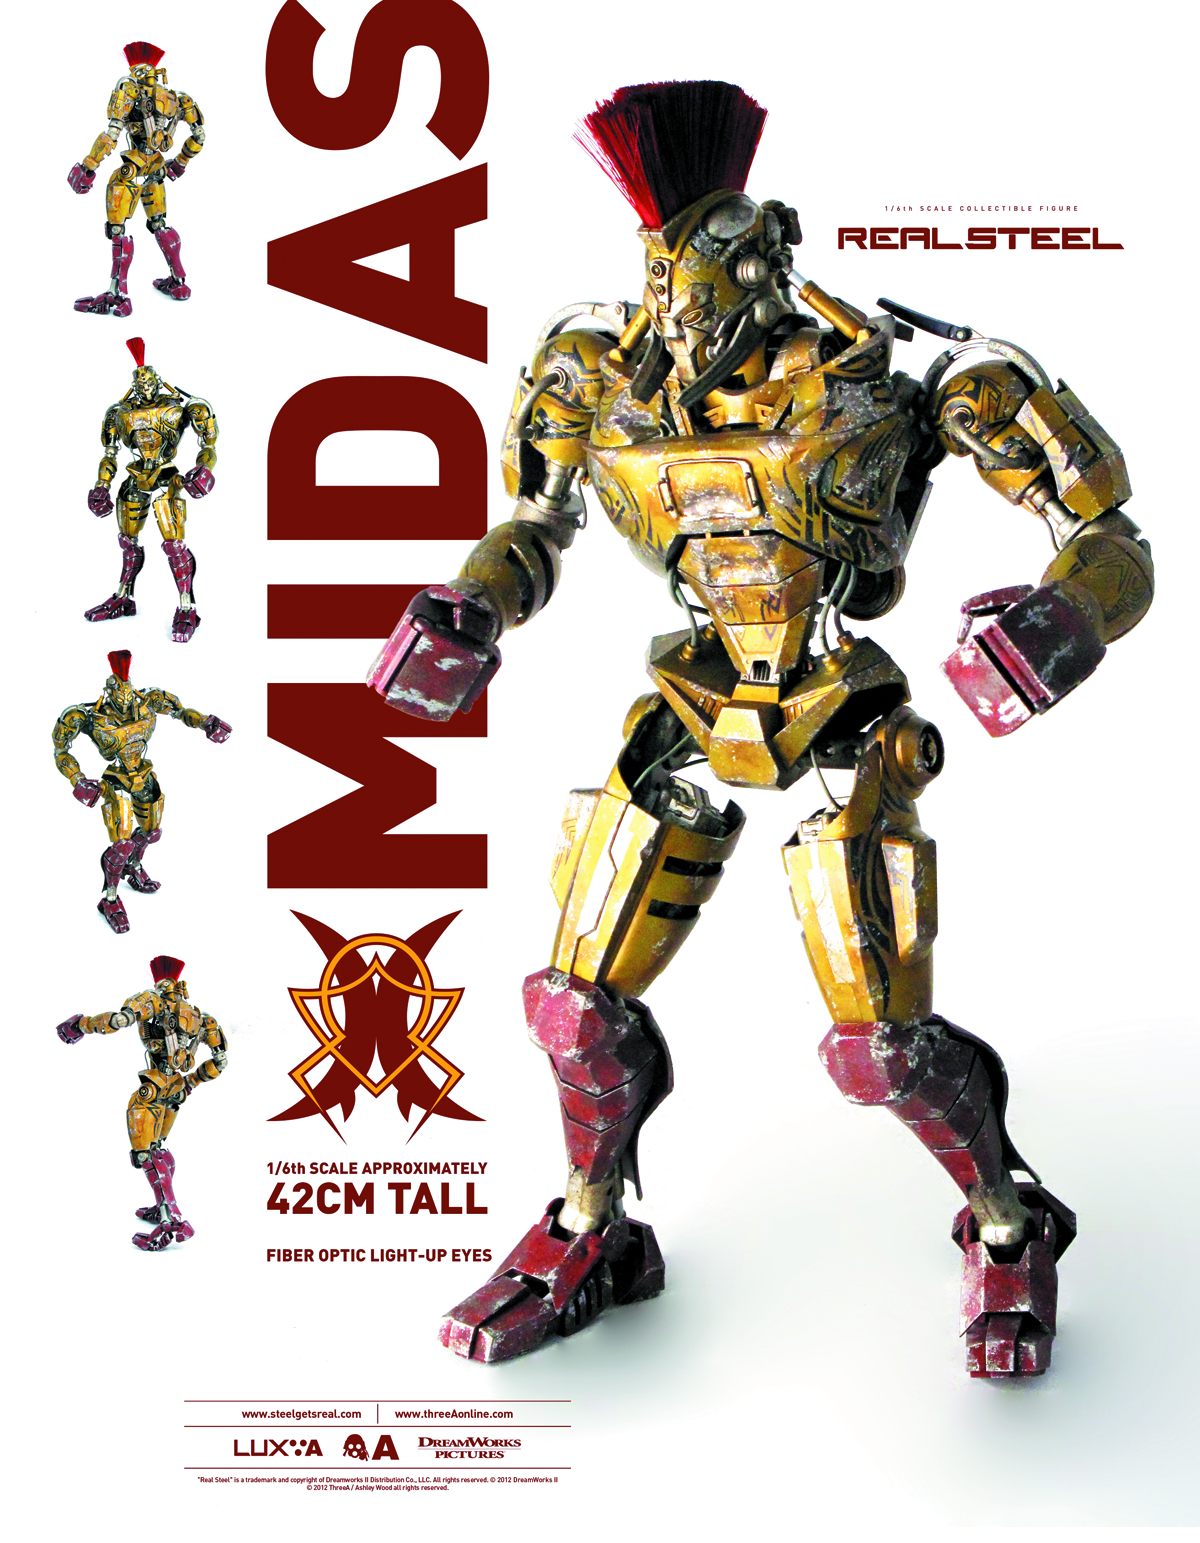 REAL STEEL MIDAS 1/6 SCALE FIG